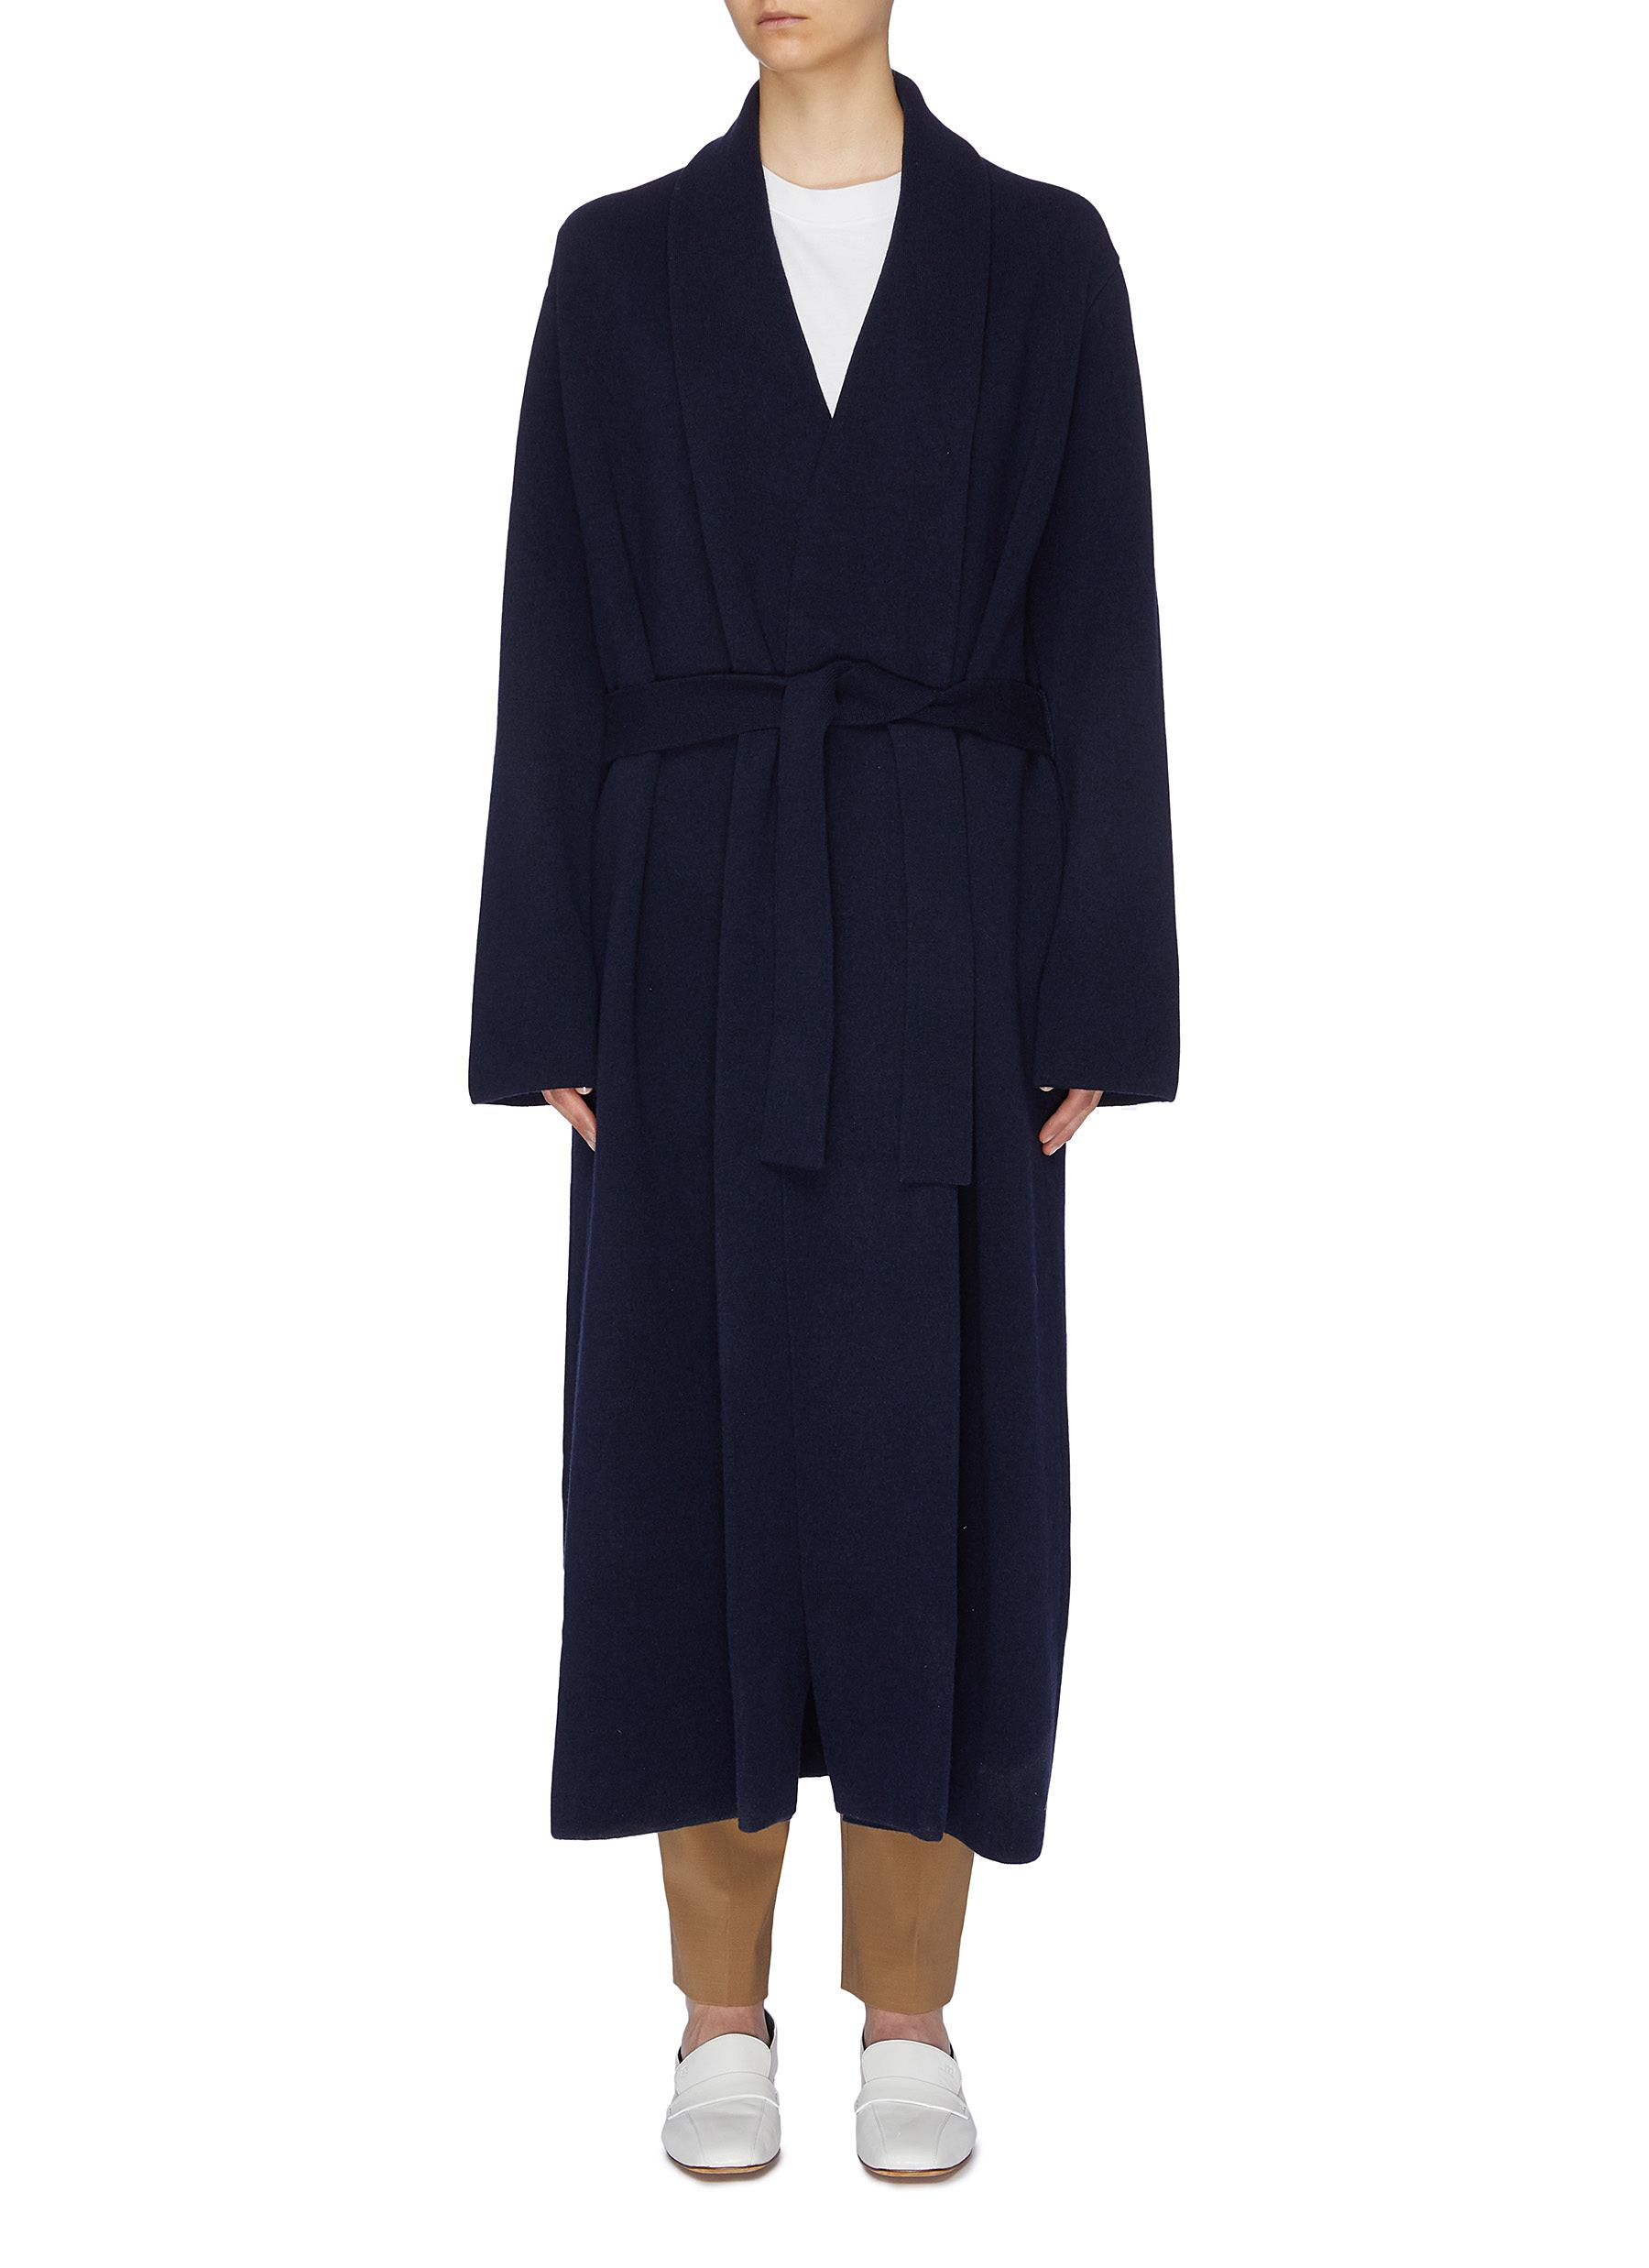 Hera belted Merino wool blend long cardigan by The Row